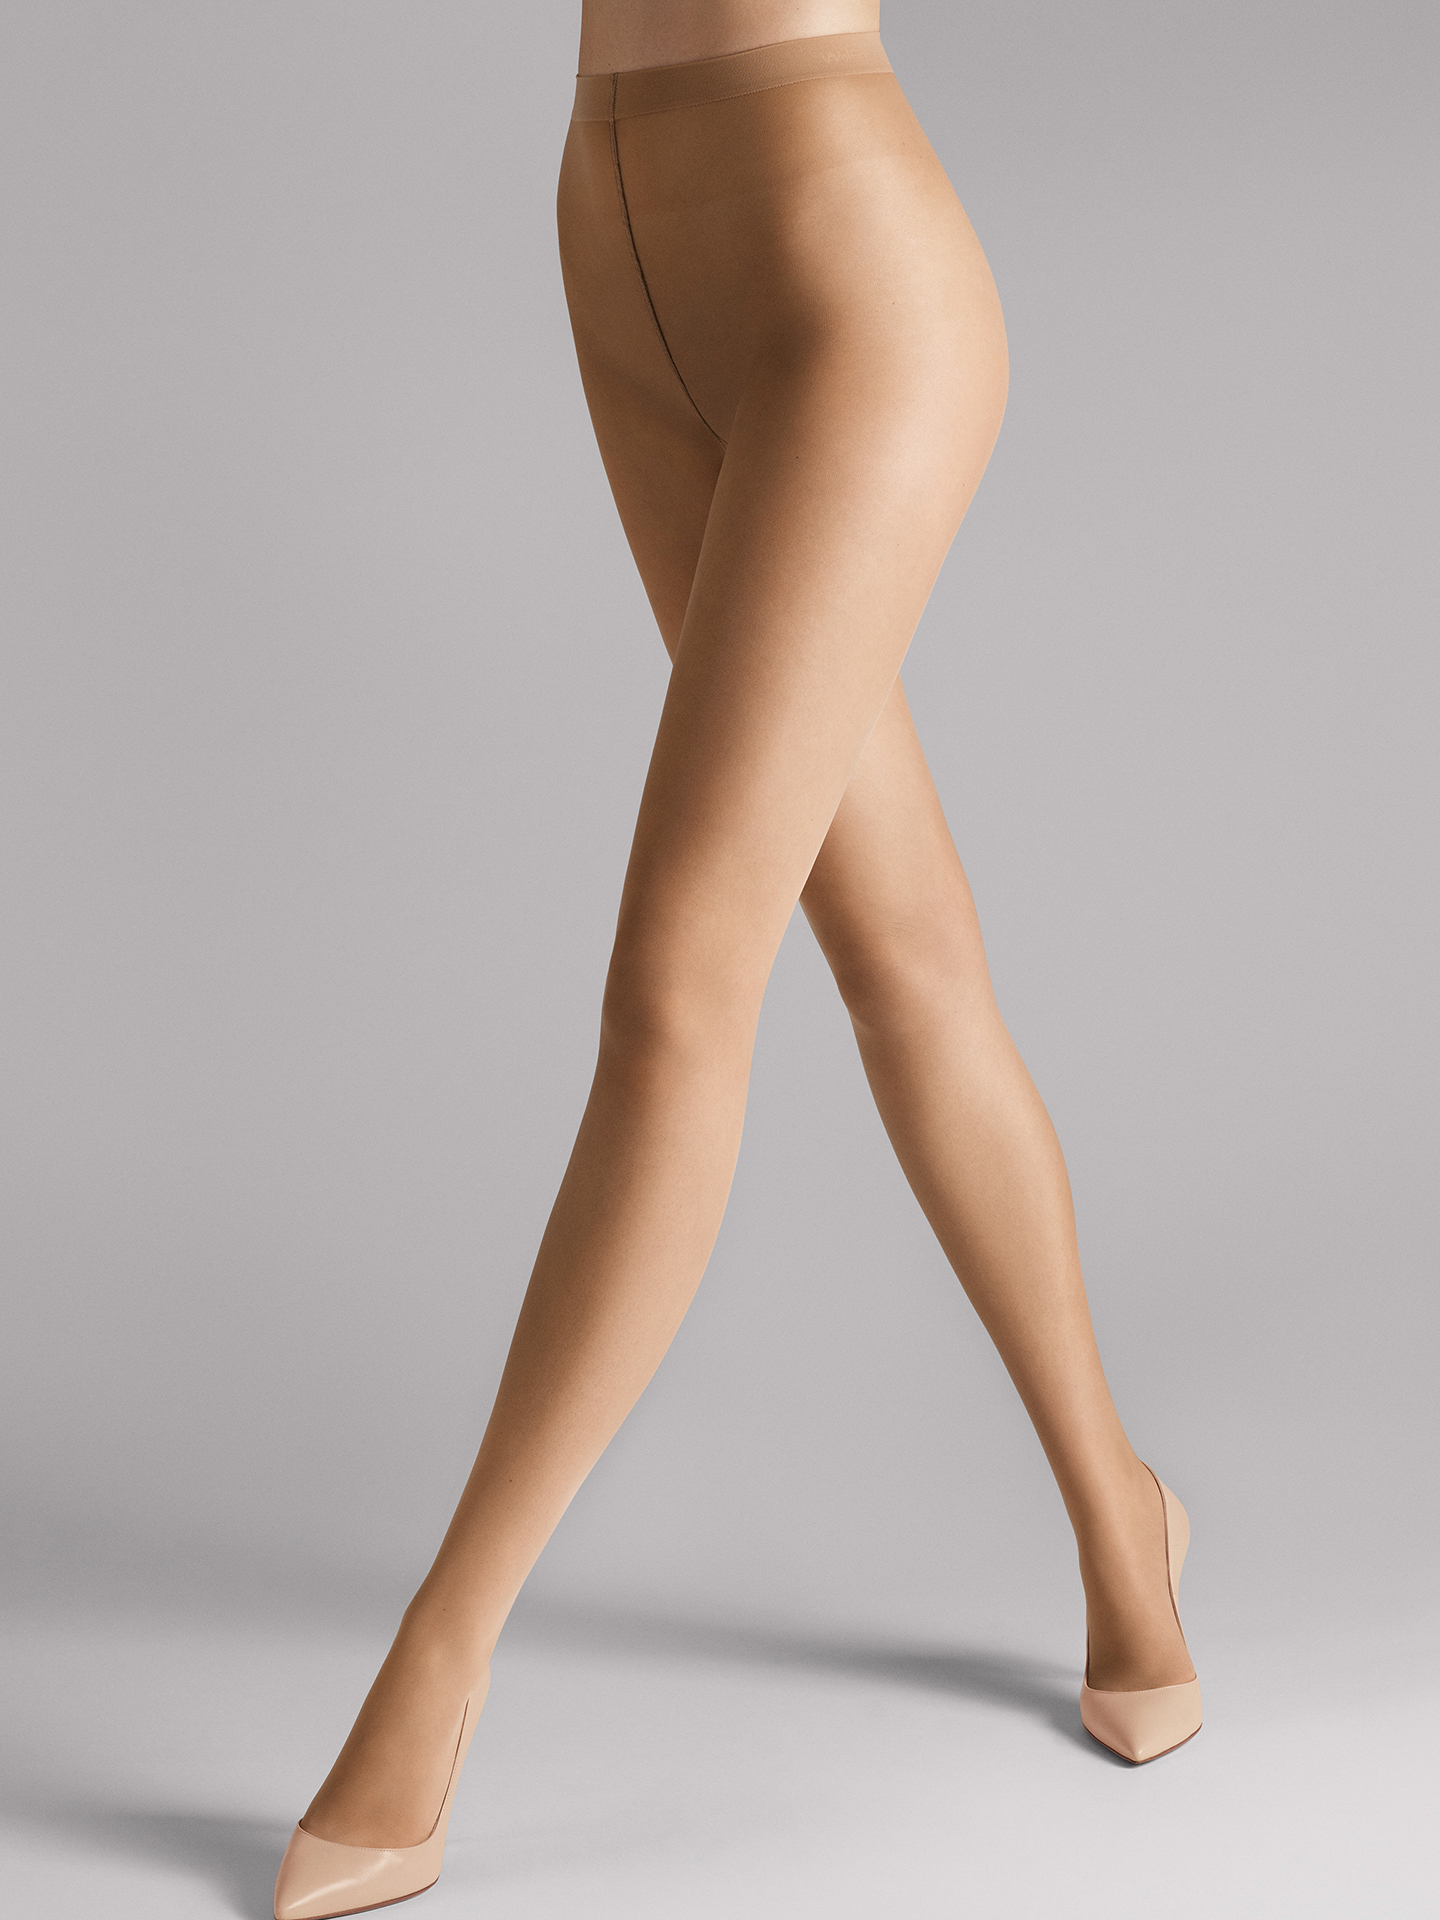 Wolford Apparel & Accessories > Clothing > Collant Sheer 15 - 4467 - S